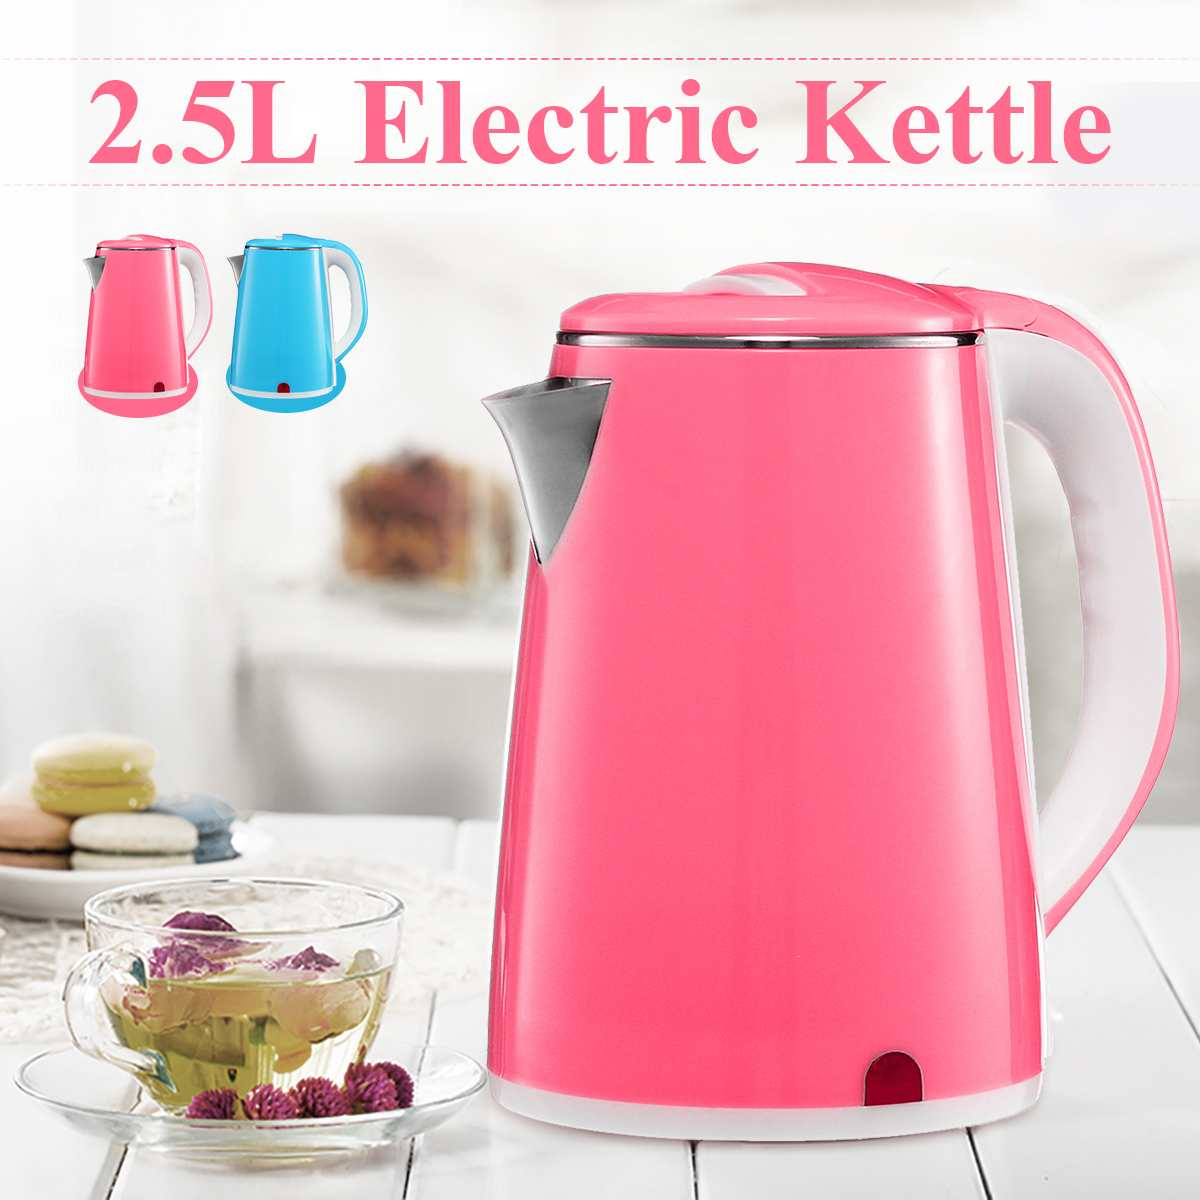 2.5L Double-layer Stainless Steel 220V 1500W Power 360 Degree Rotational Base Overheating Power Off Electric Water Kettles